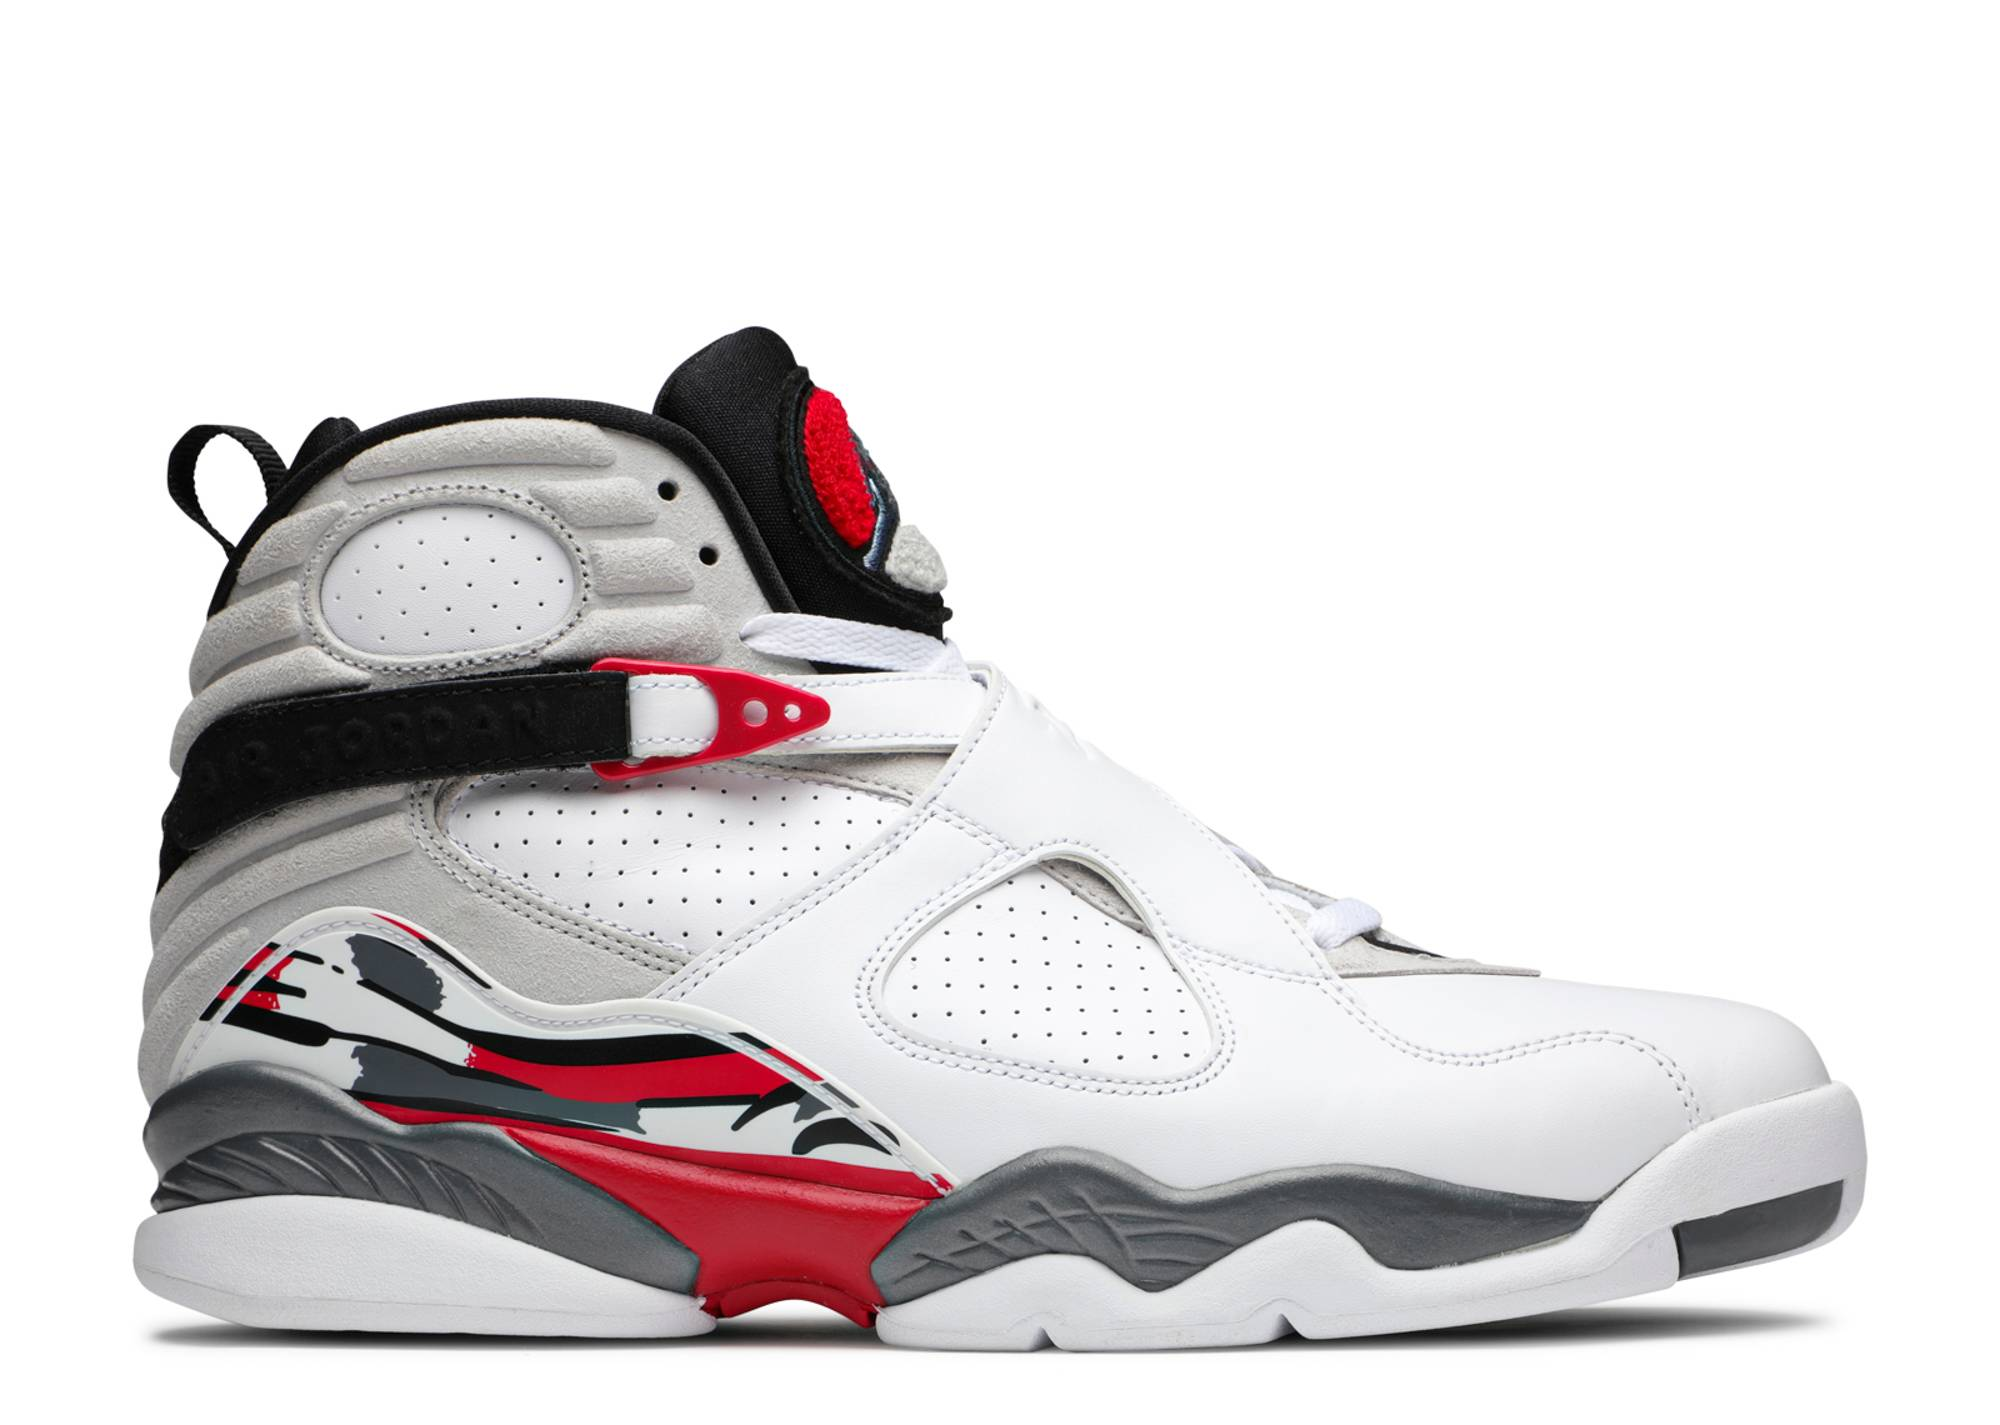 5eb0e7f2040bab Air Jordan 8 Retro